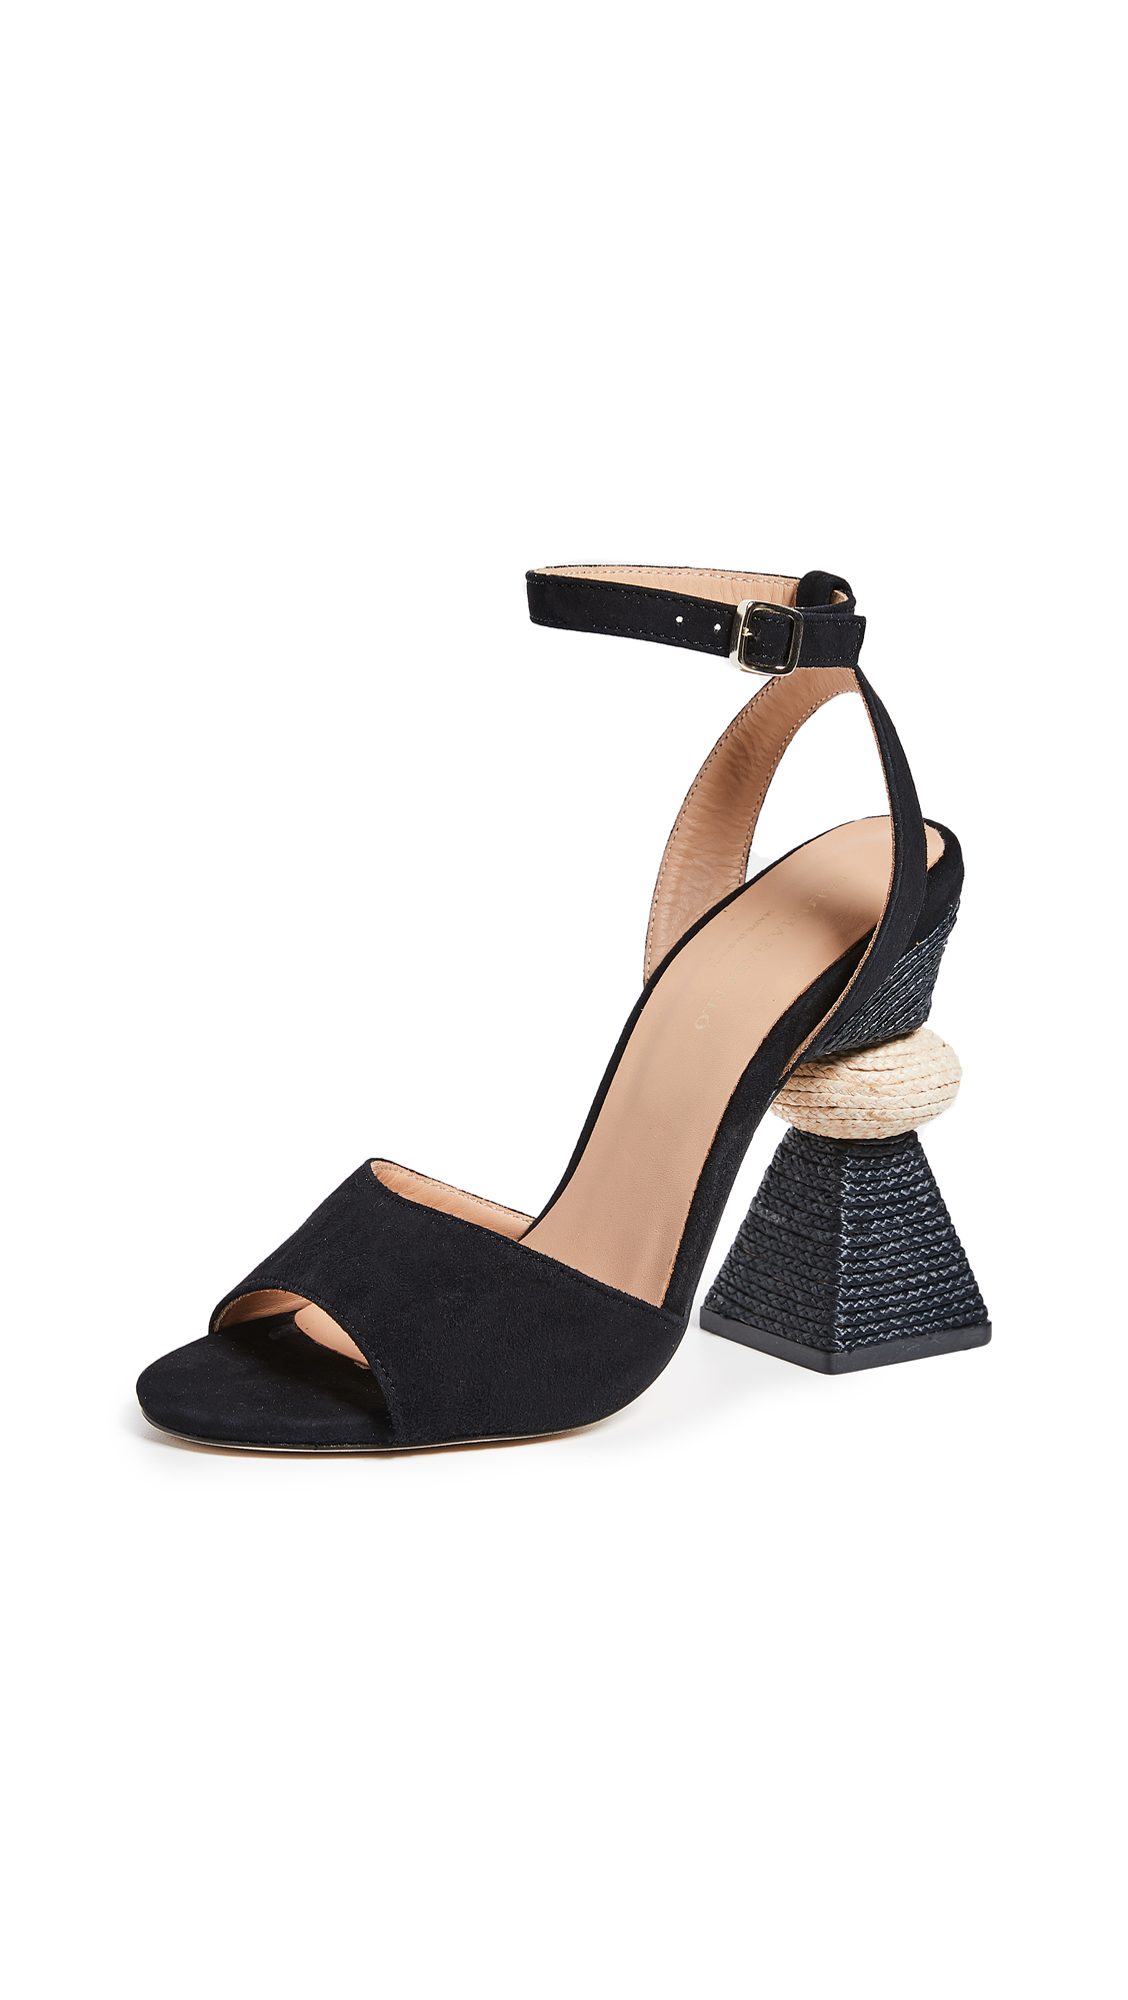 Paloma Barcelo Bibi Traingle Heel Sandals - Black